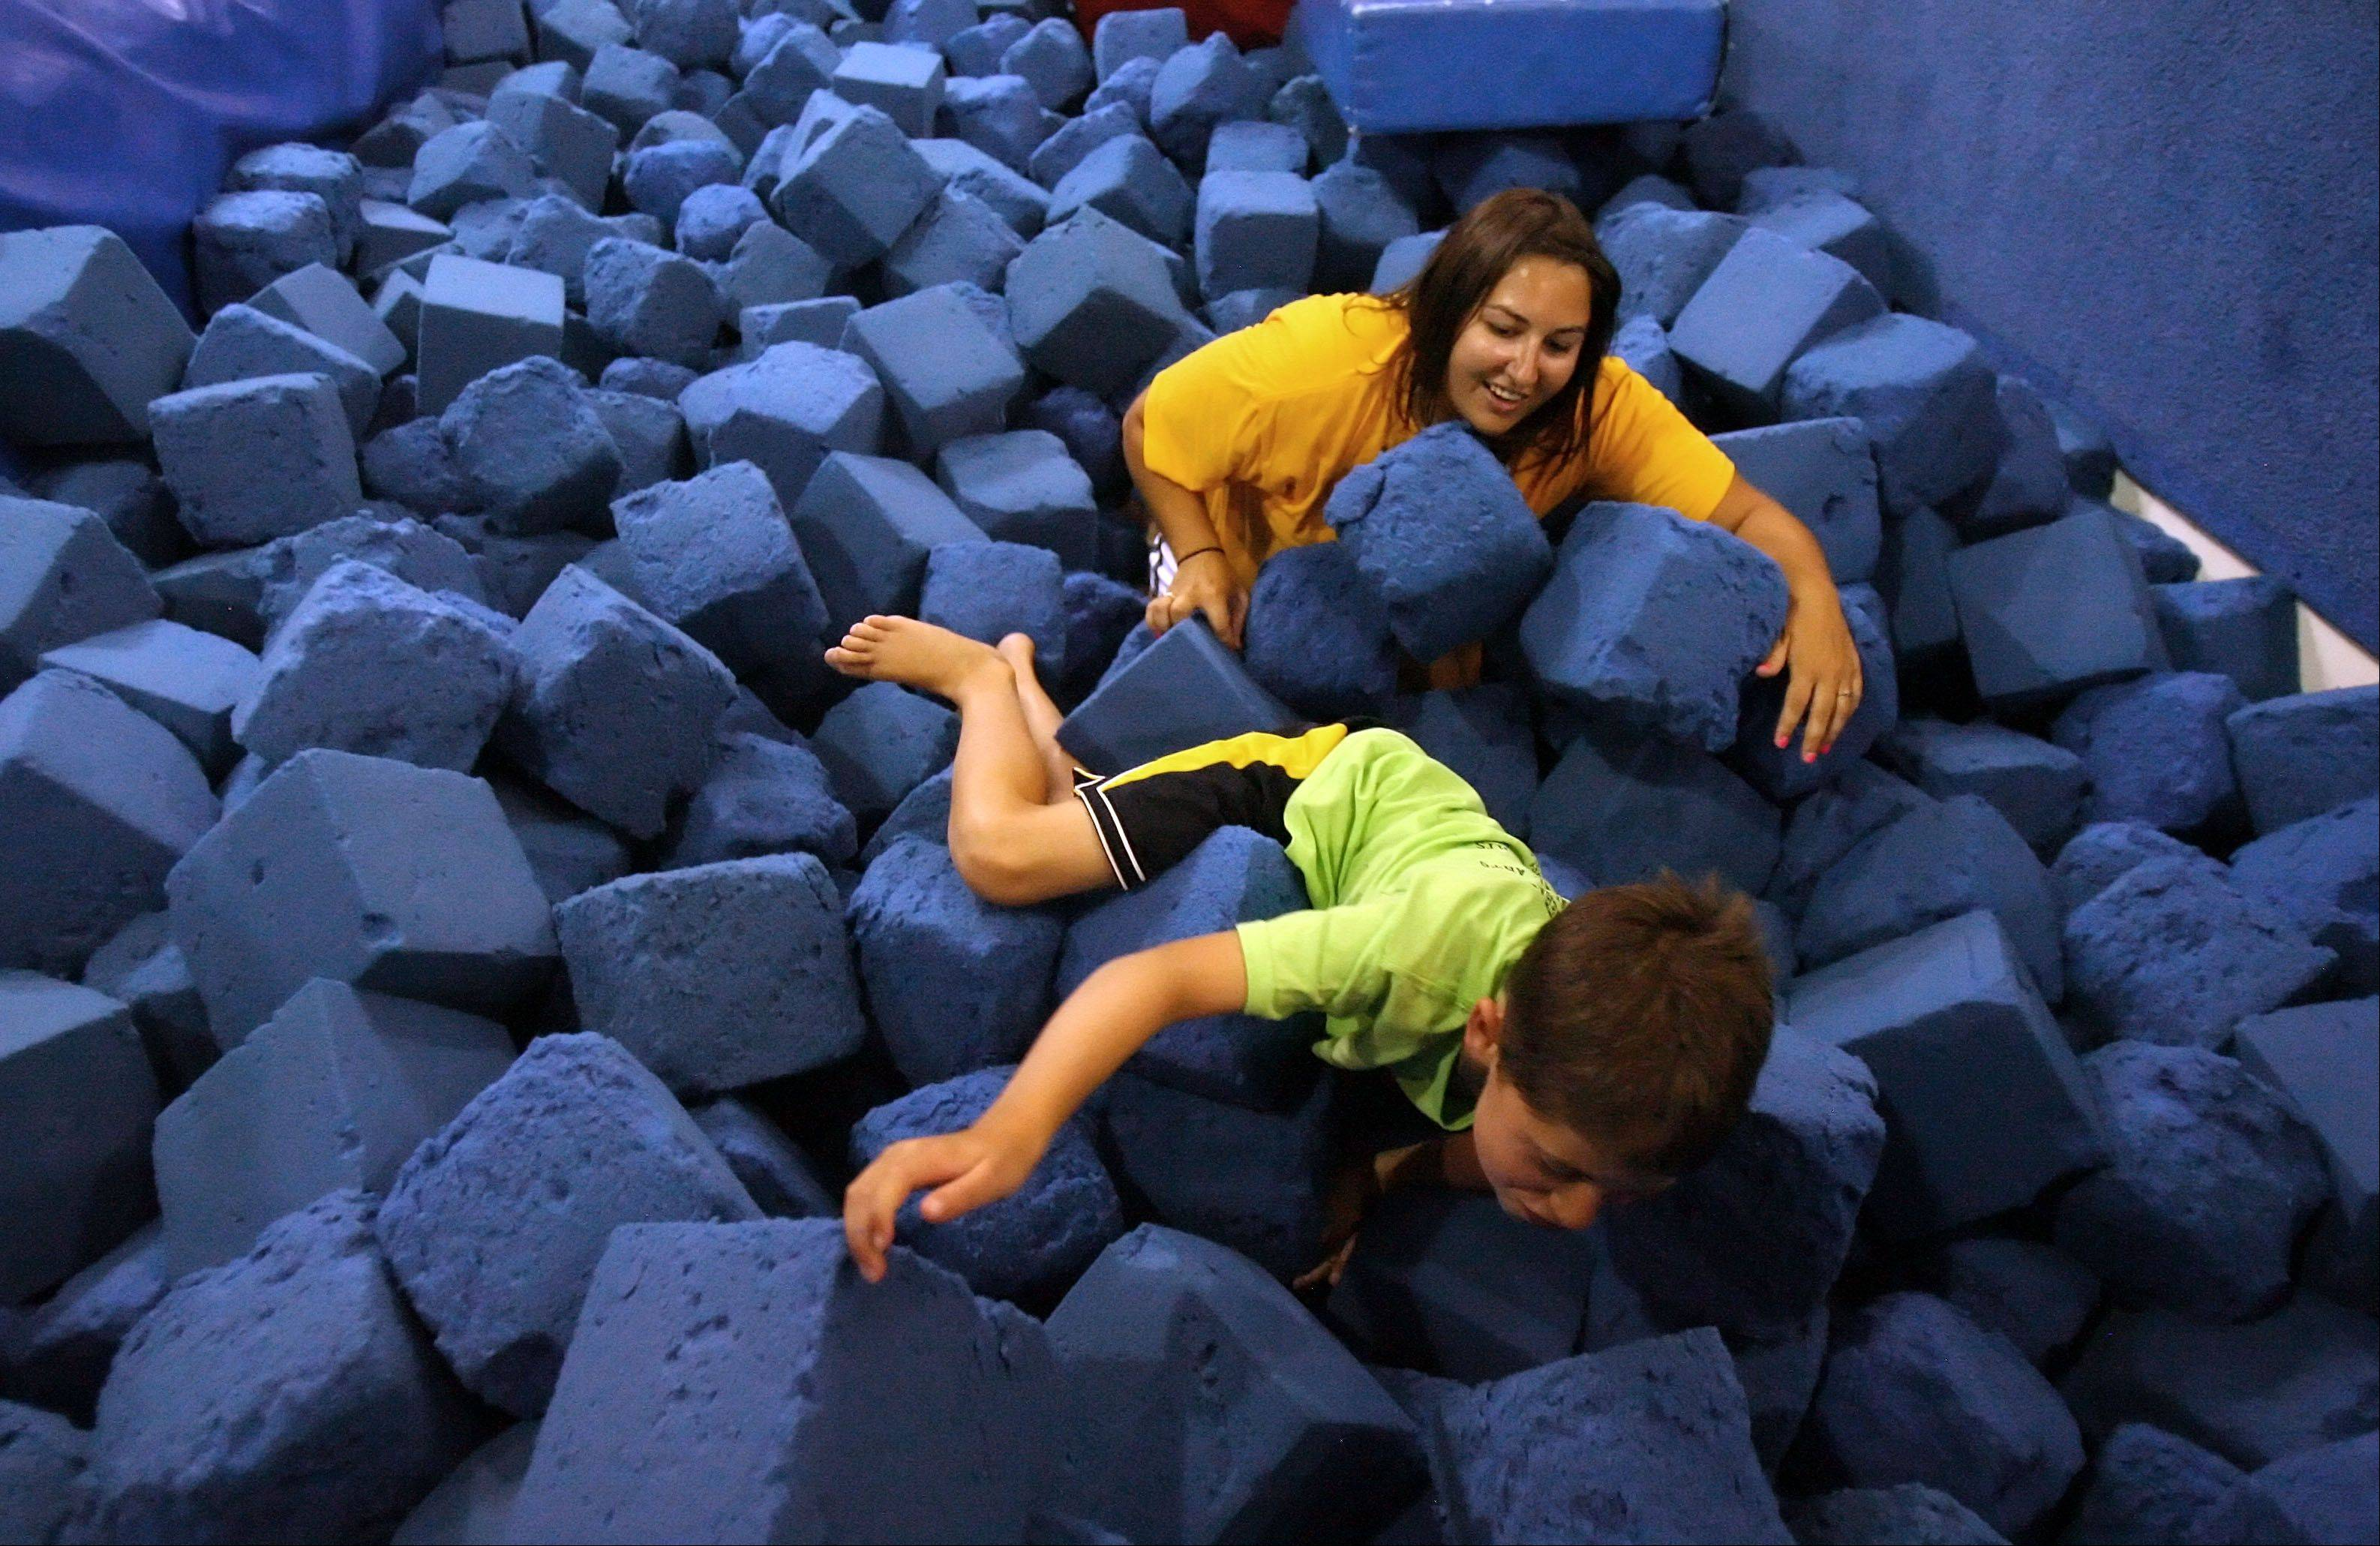 Steve Lundy A foam pit makes great therapy for Colin Brown, 8 of Arlington Heights as he works with occupational therapist Melissa Deets of Greendale, Wis., in a program called A Big Blast Project at the Gym Spot in Mundelein. The program uses gymnastics as therapy for kids with developmental issues.